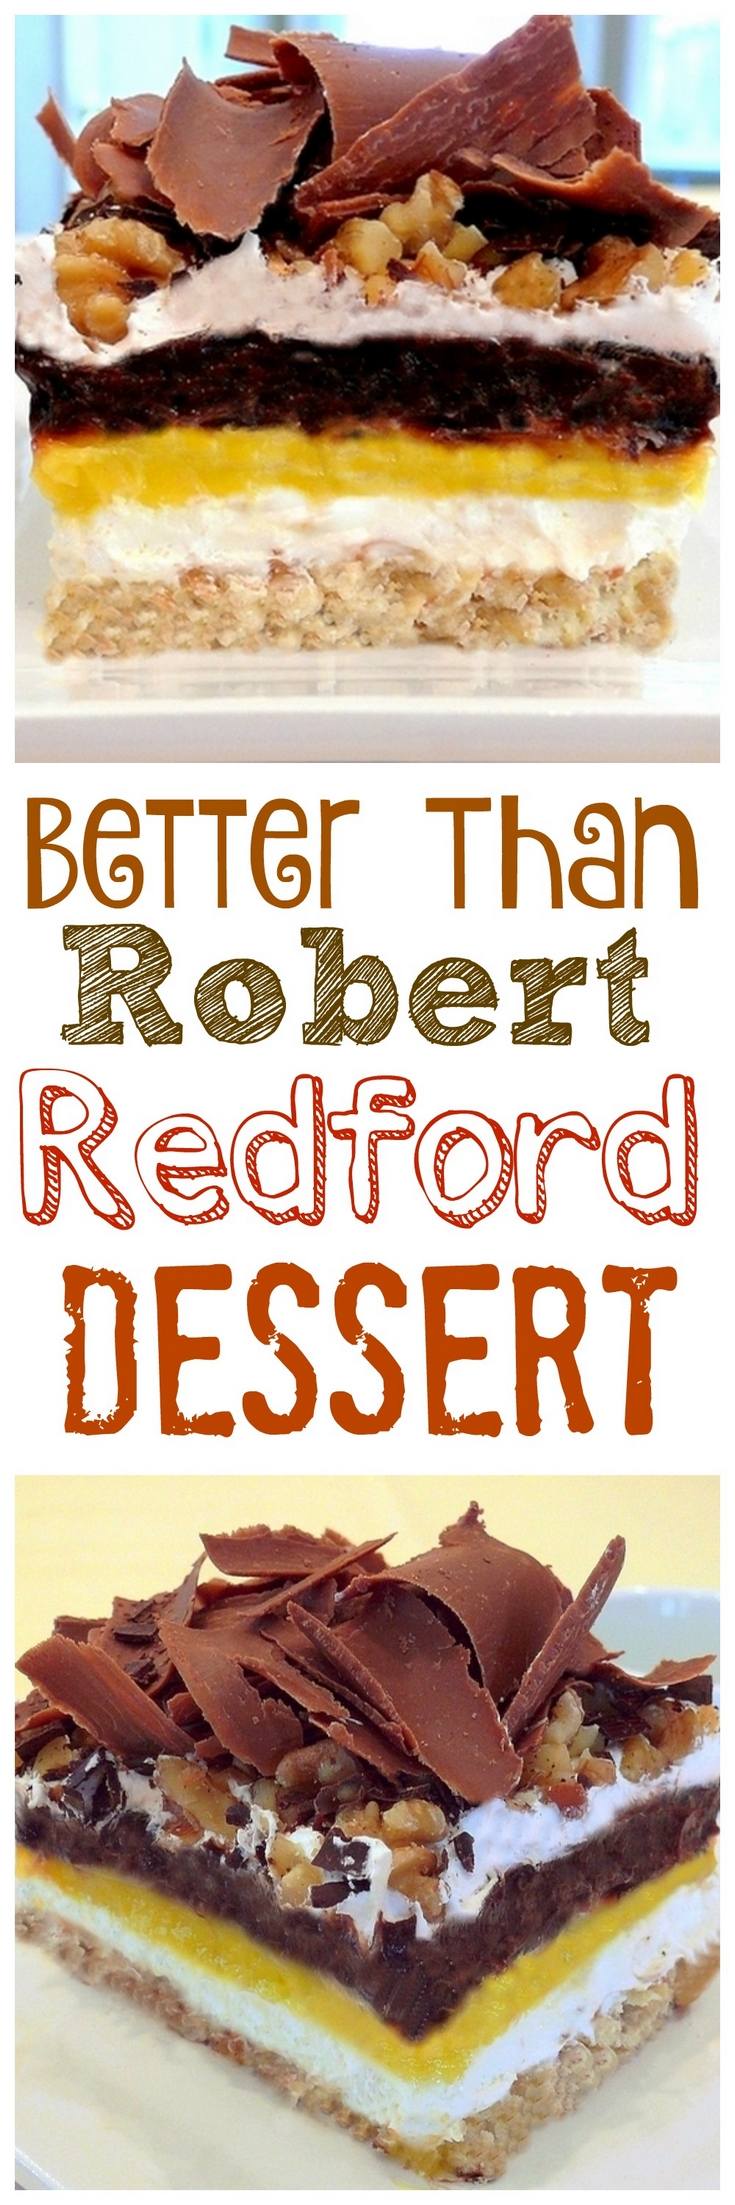 VIDEO + RECIPE: This sinfully delicious, 4-layer, no-bake cake is officially known as Better than Robert Redford Dessert from NoblePig.com. via @cmpollak1